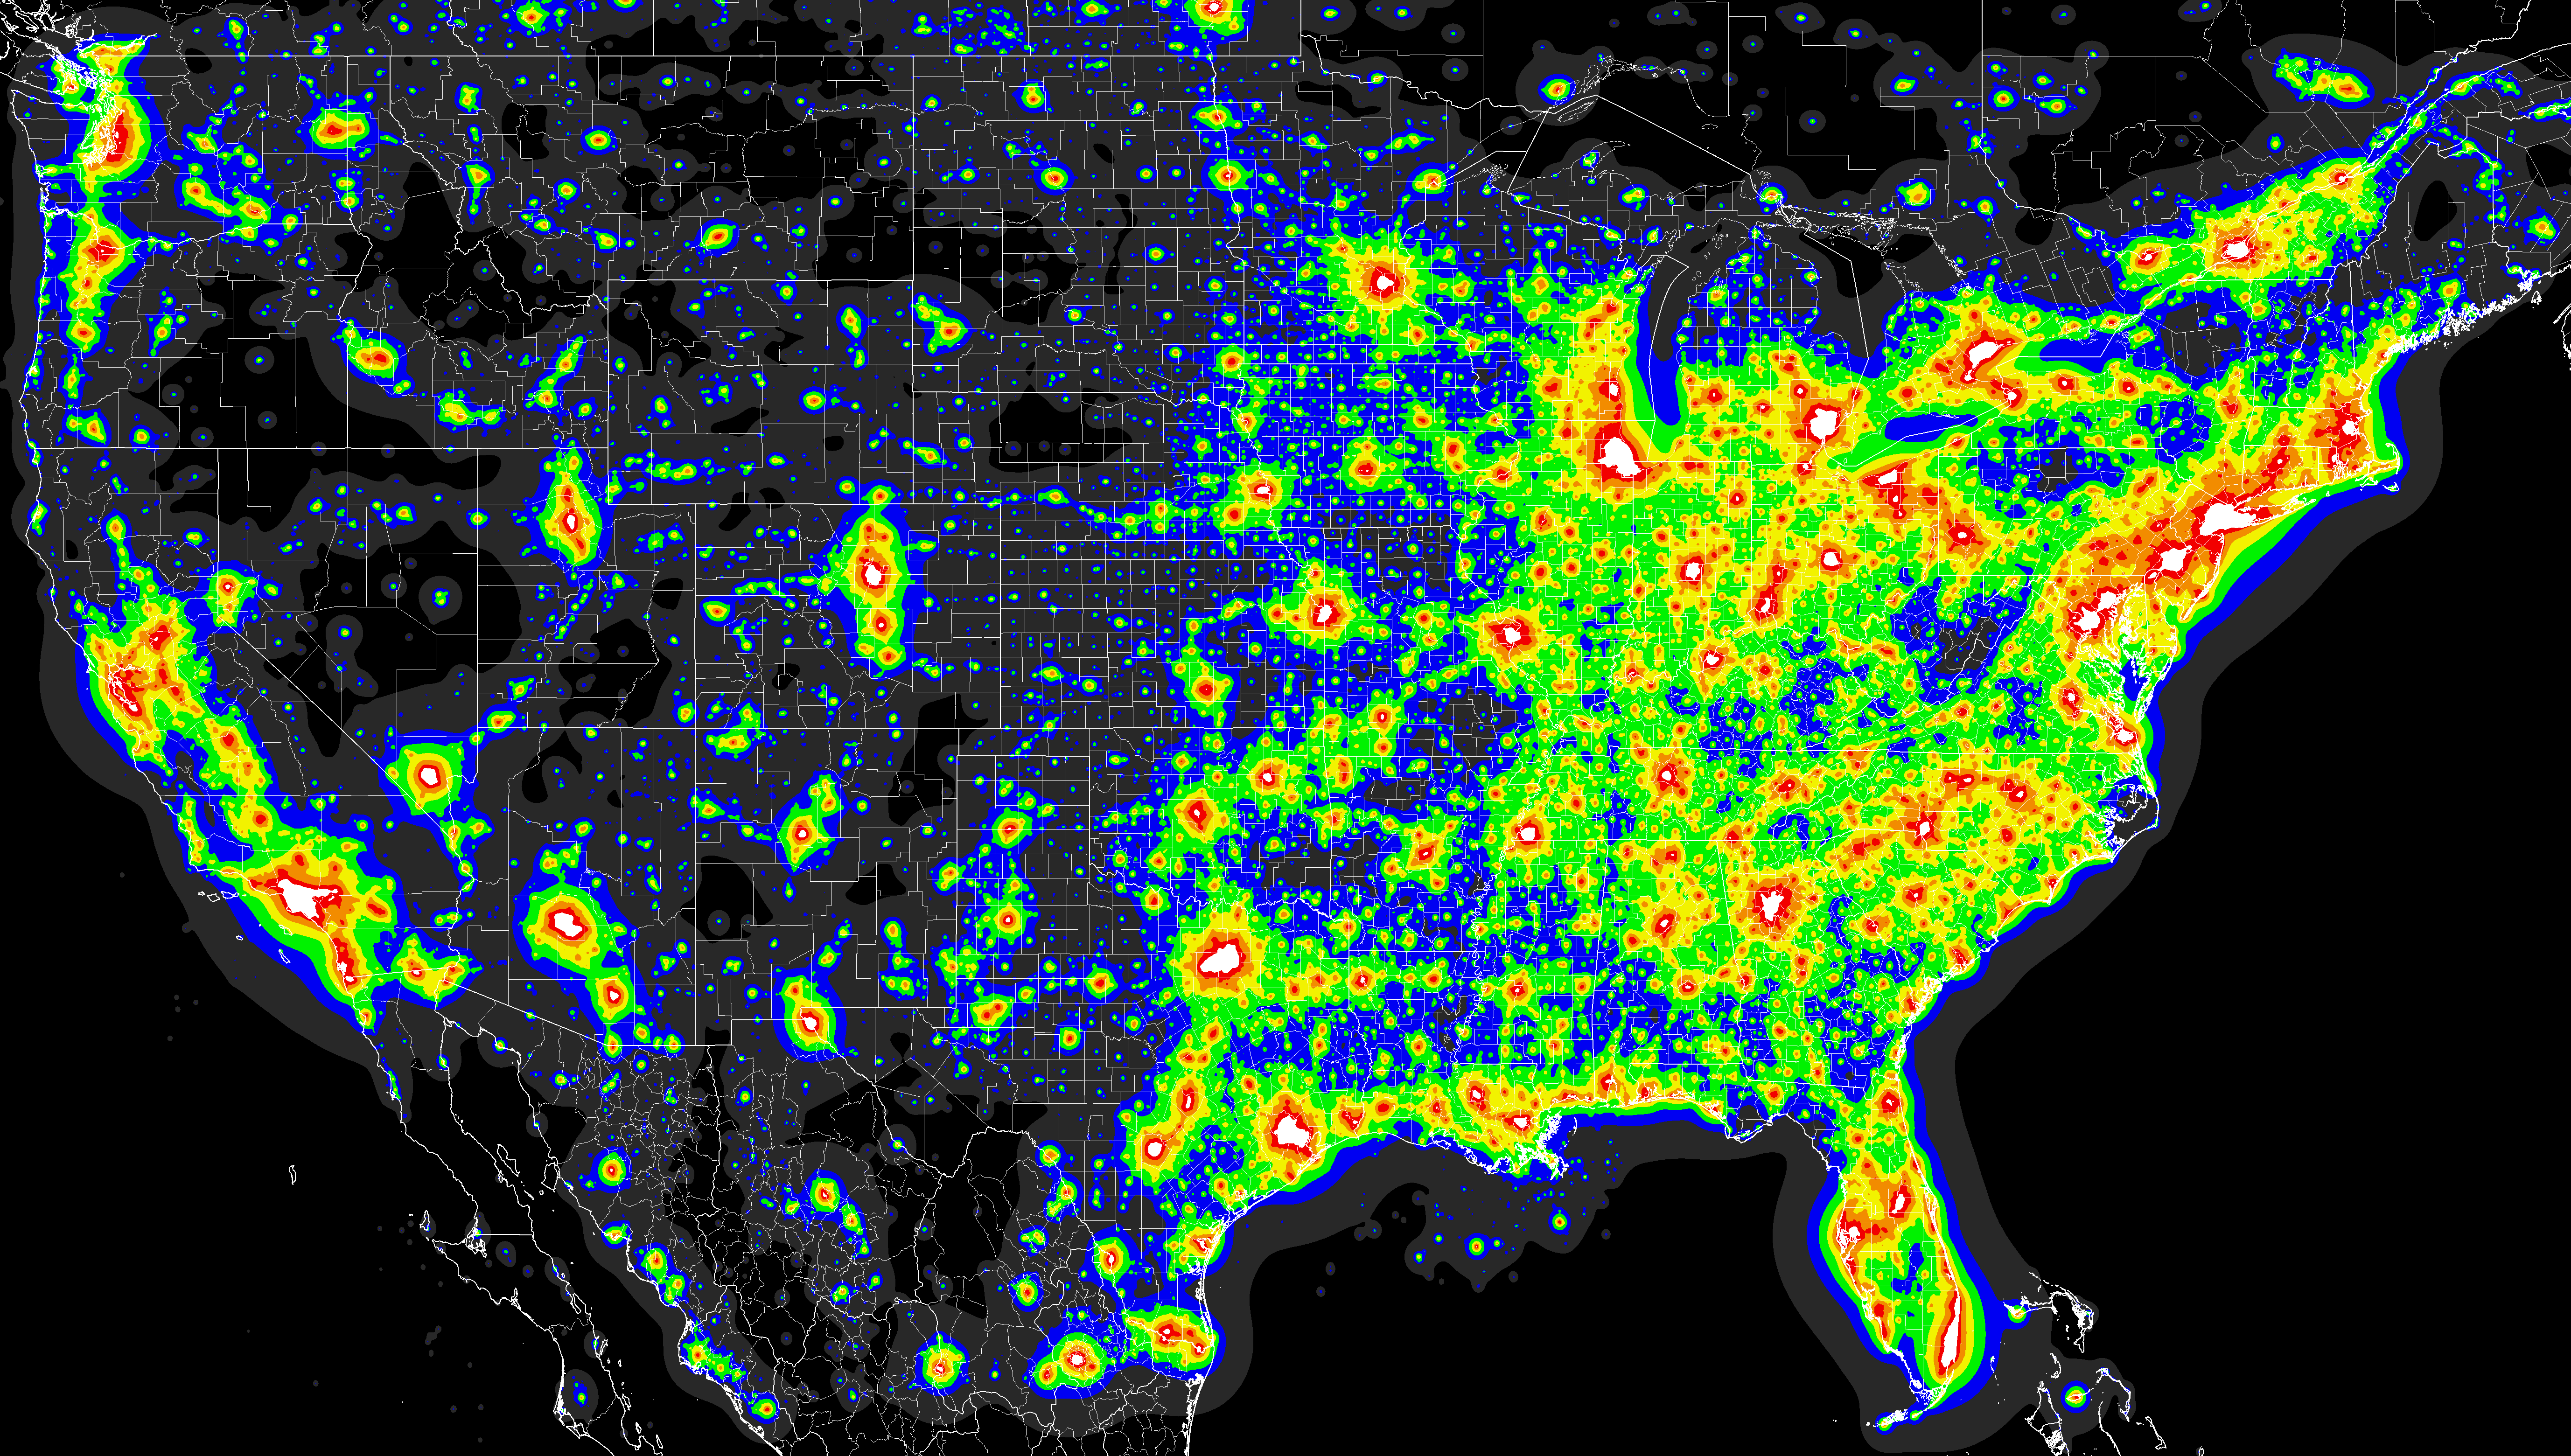 Light Pollution Map Us Light pollution in the US   Light pollution, Light pollution map